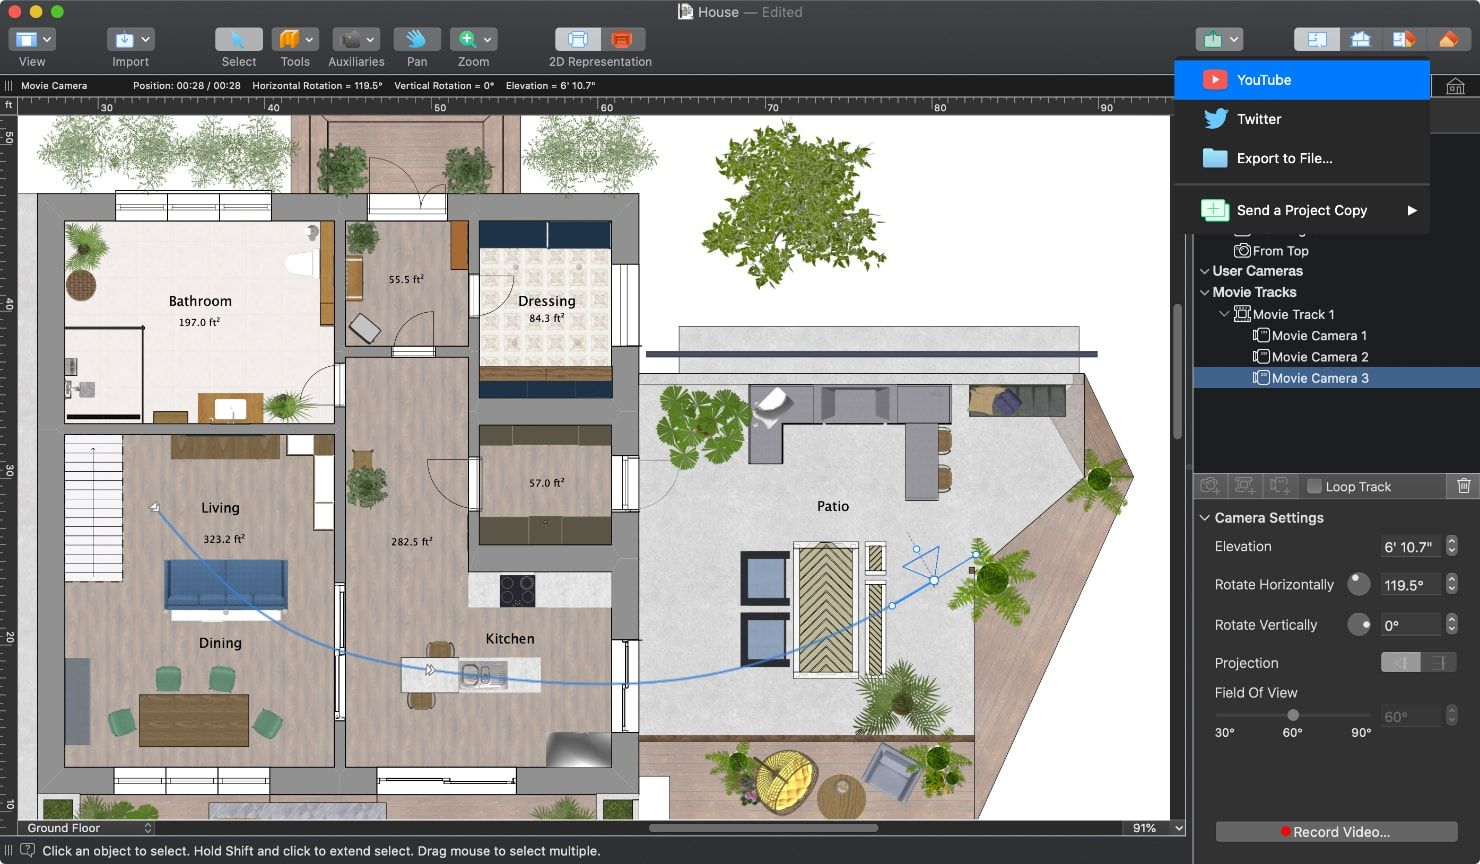 Create A Thorough Floor Plan With Live Home 3d Interior Design Software Home Design Software Interior Design